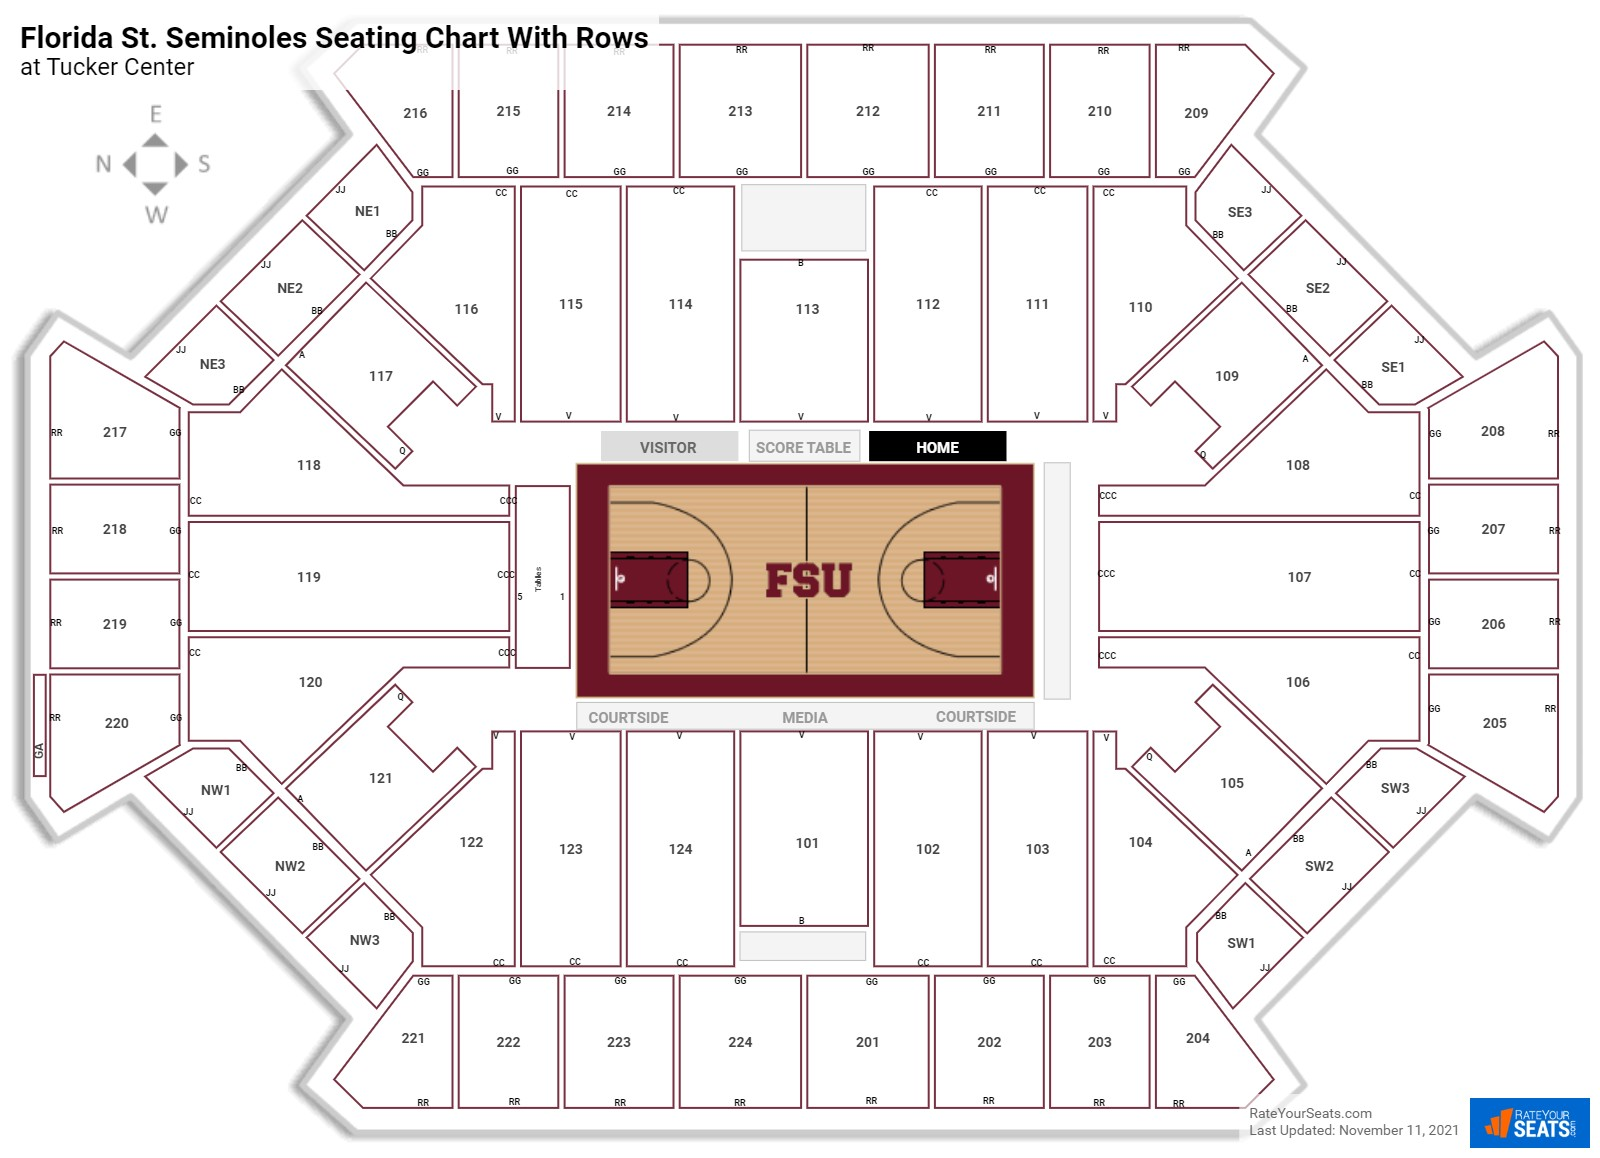 Tucker Center  seating chart with rows